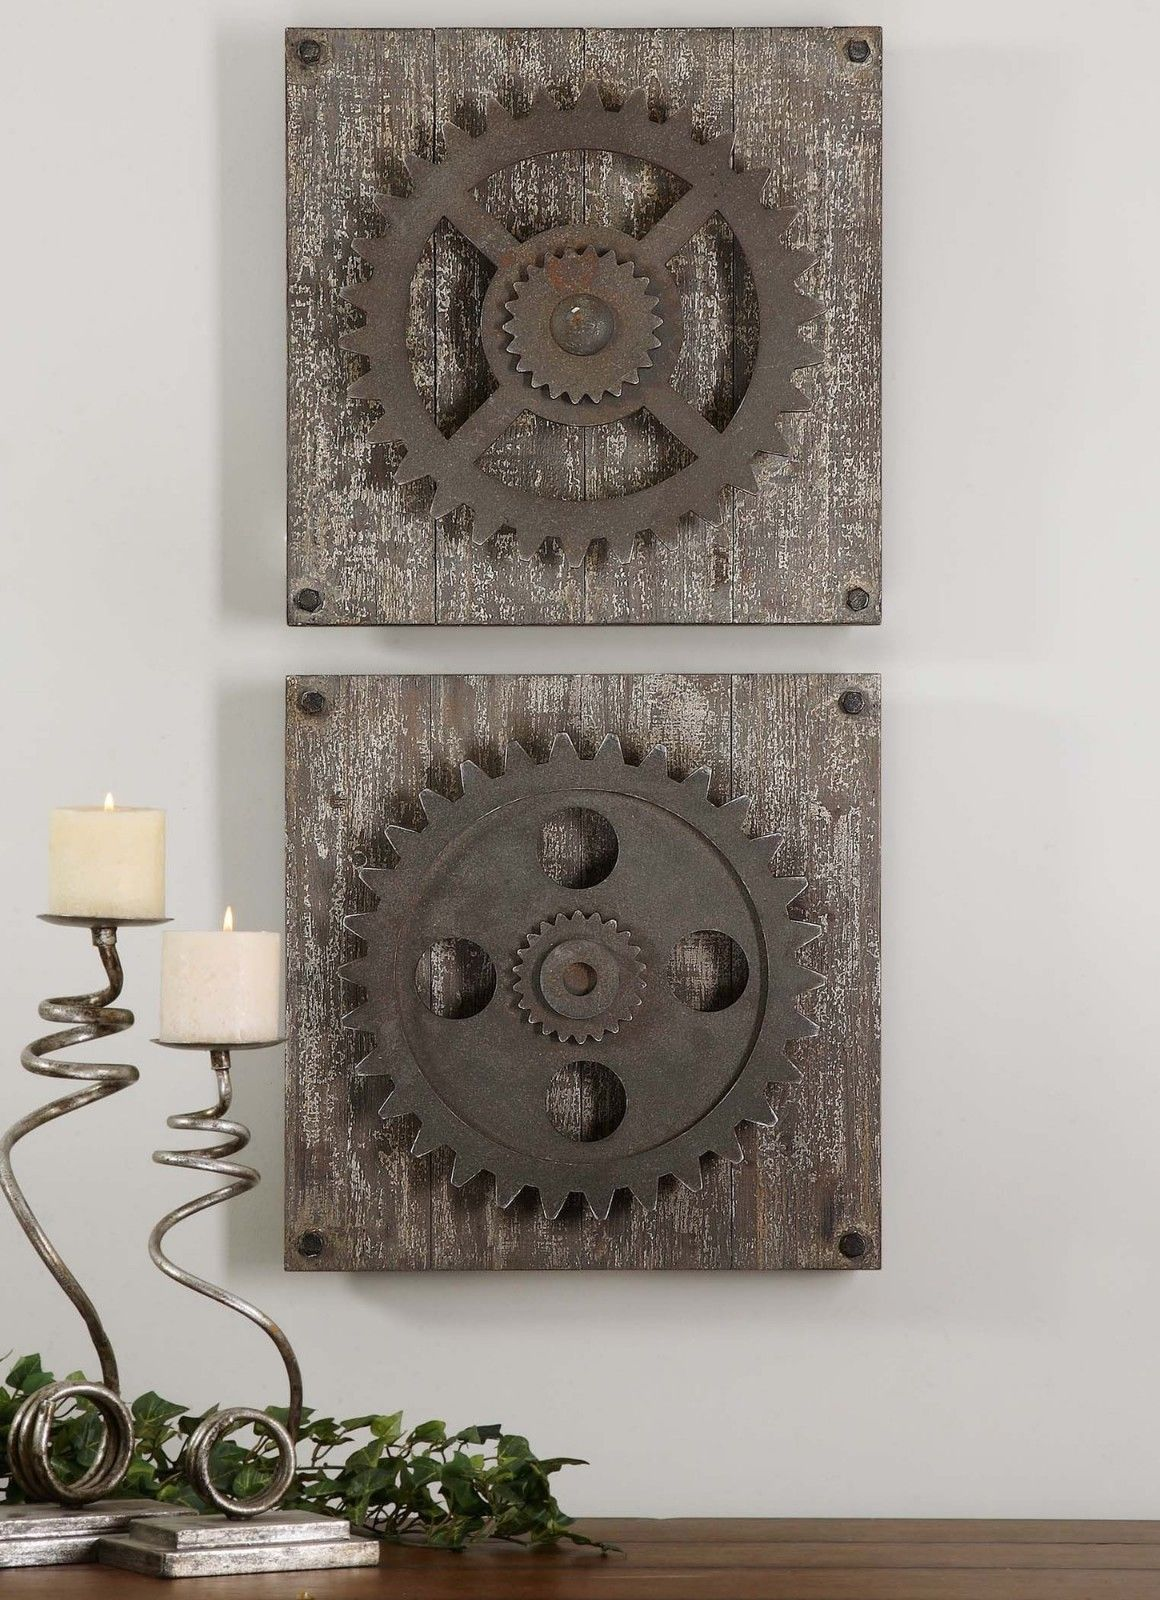 urban industrial loft steampunk decor rusty gears cogs 3d wall art